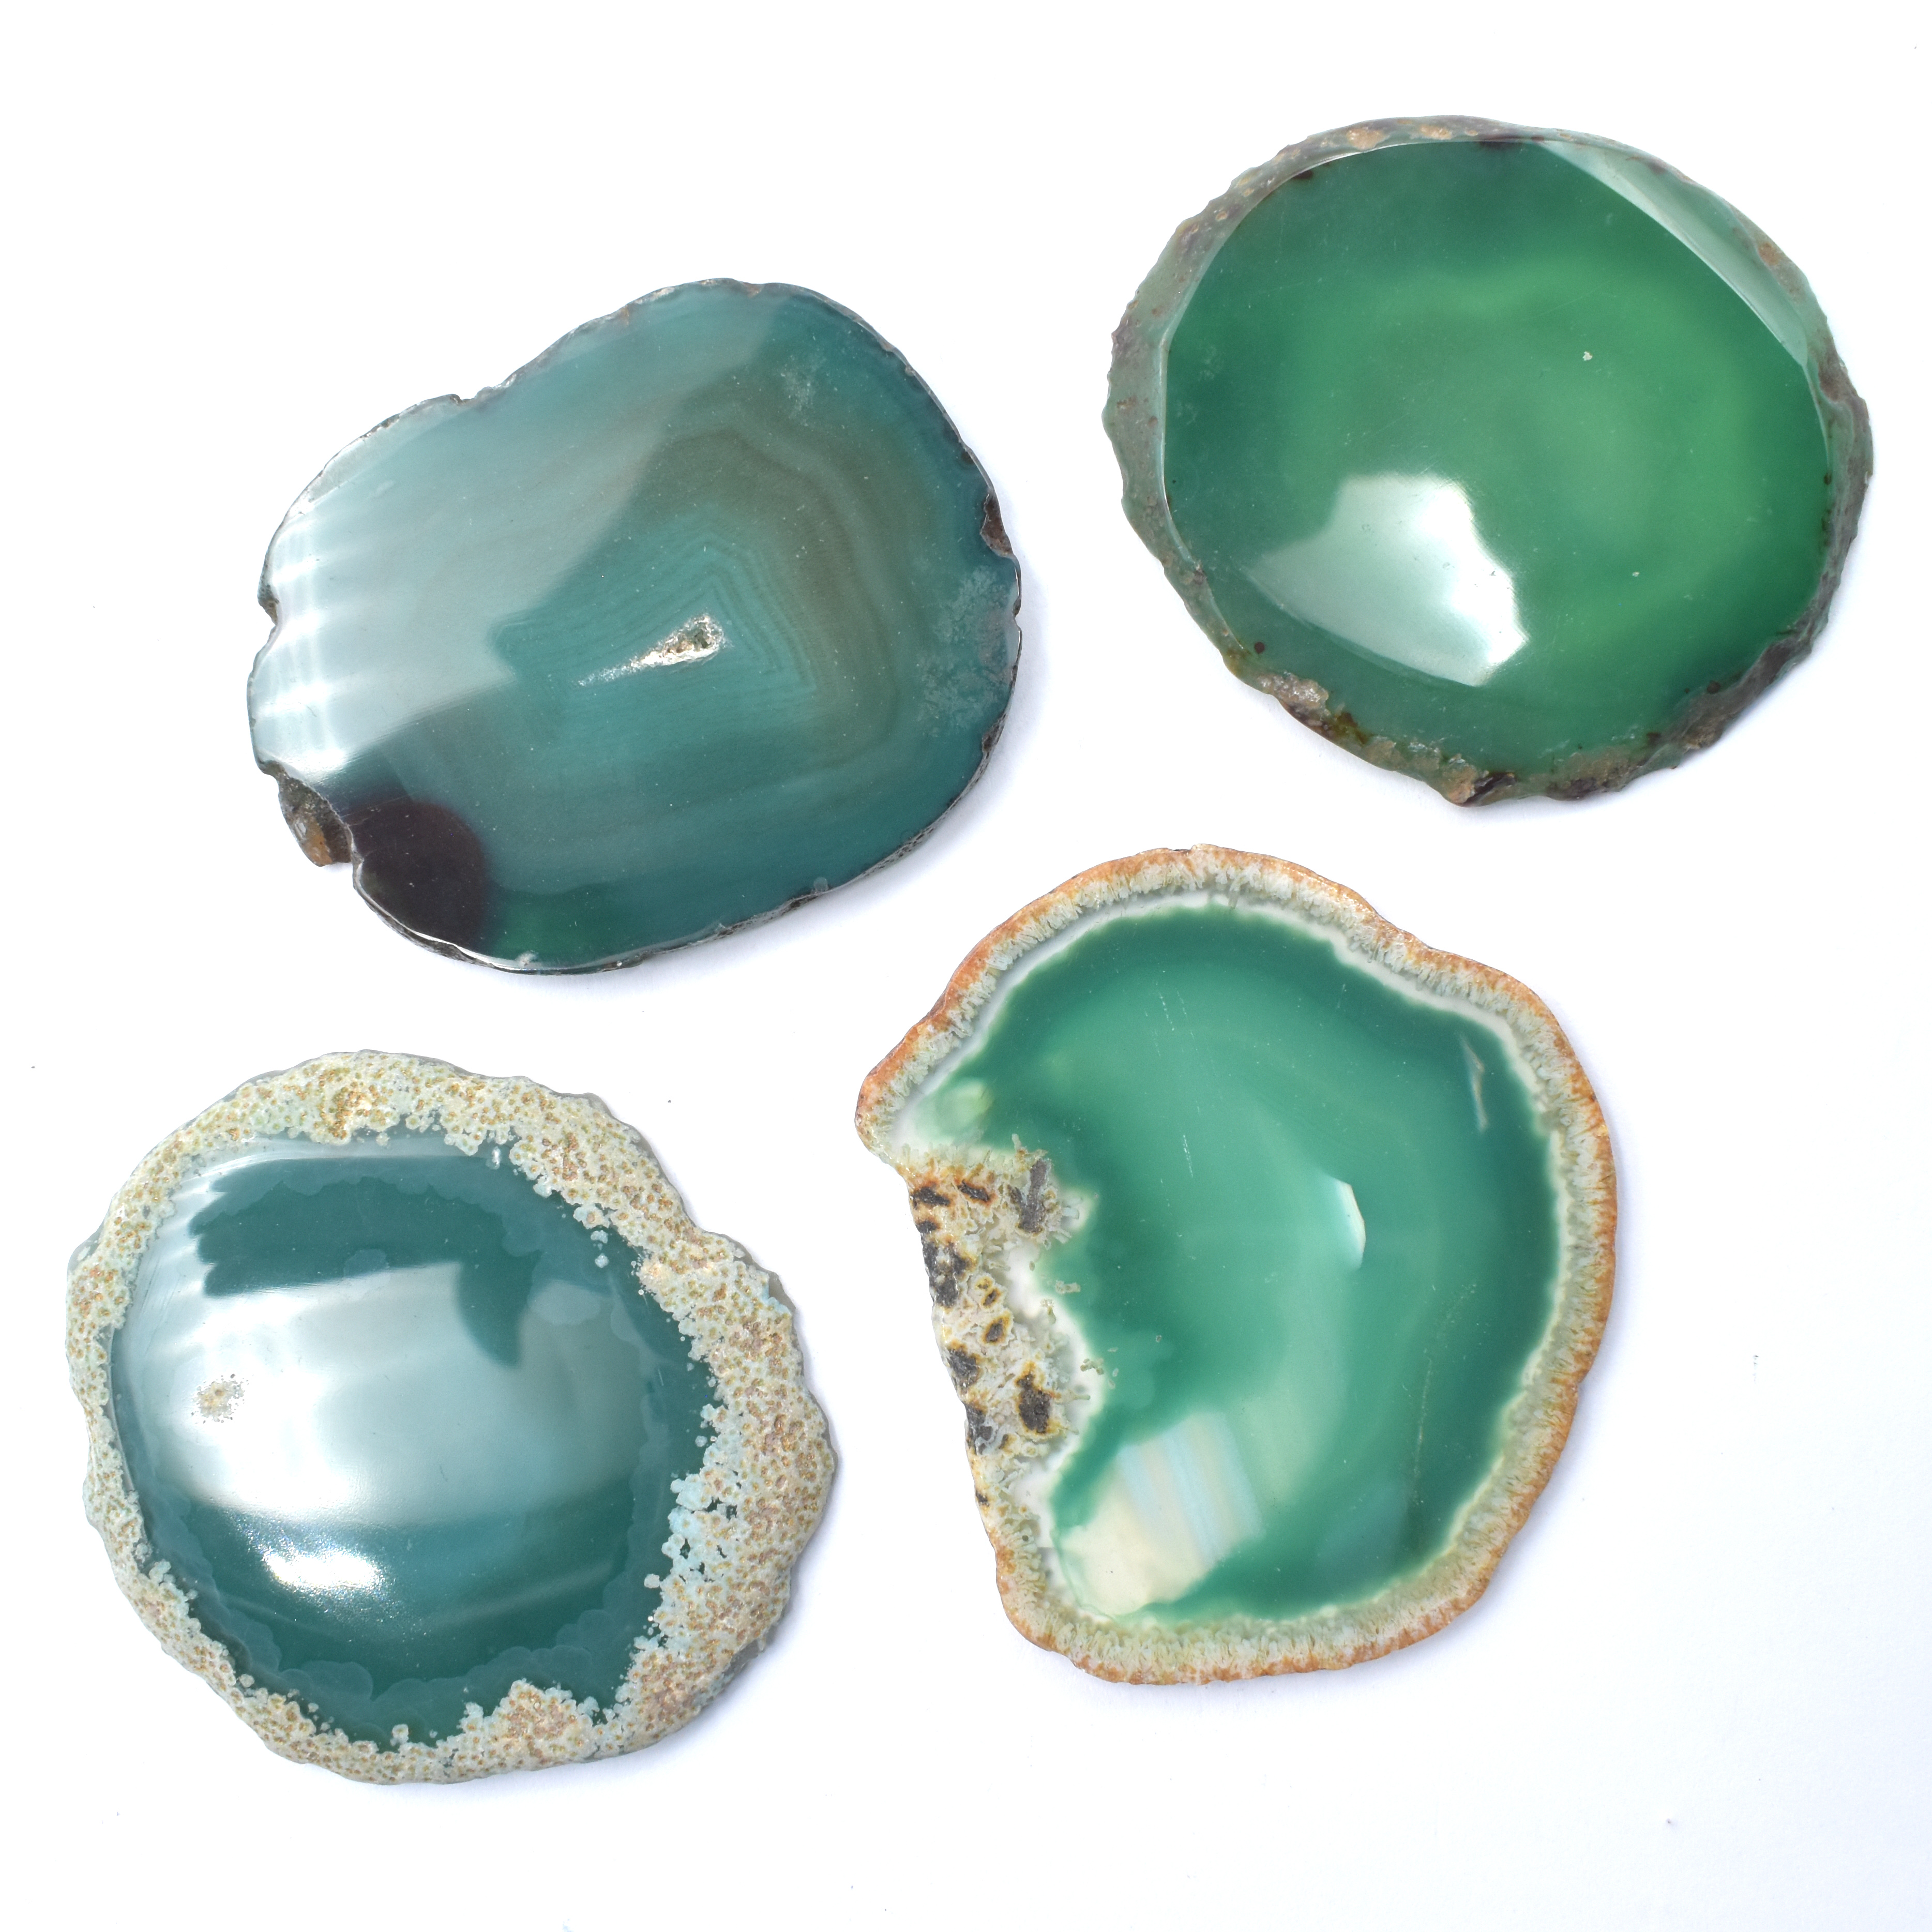 Agate Slice Green '1' Agate Slices natural crystals wholesale